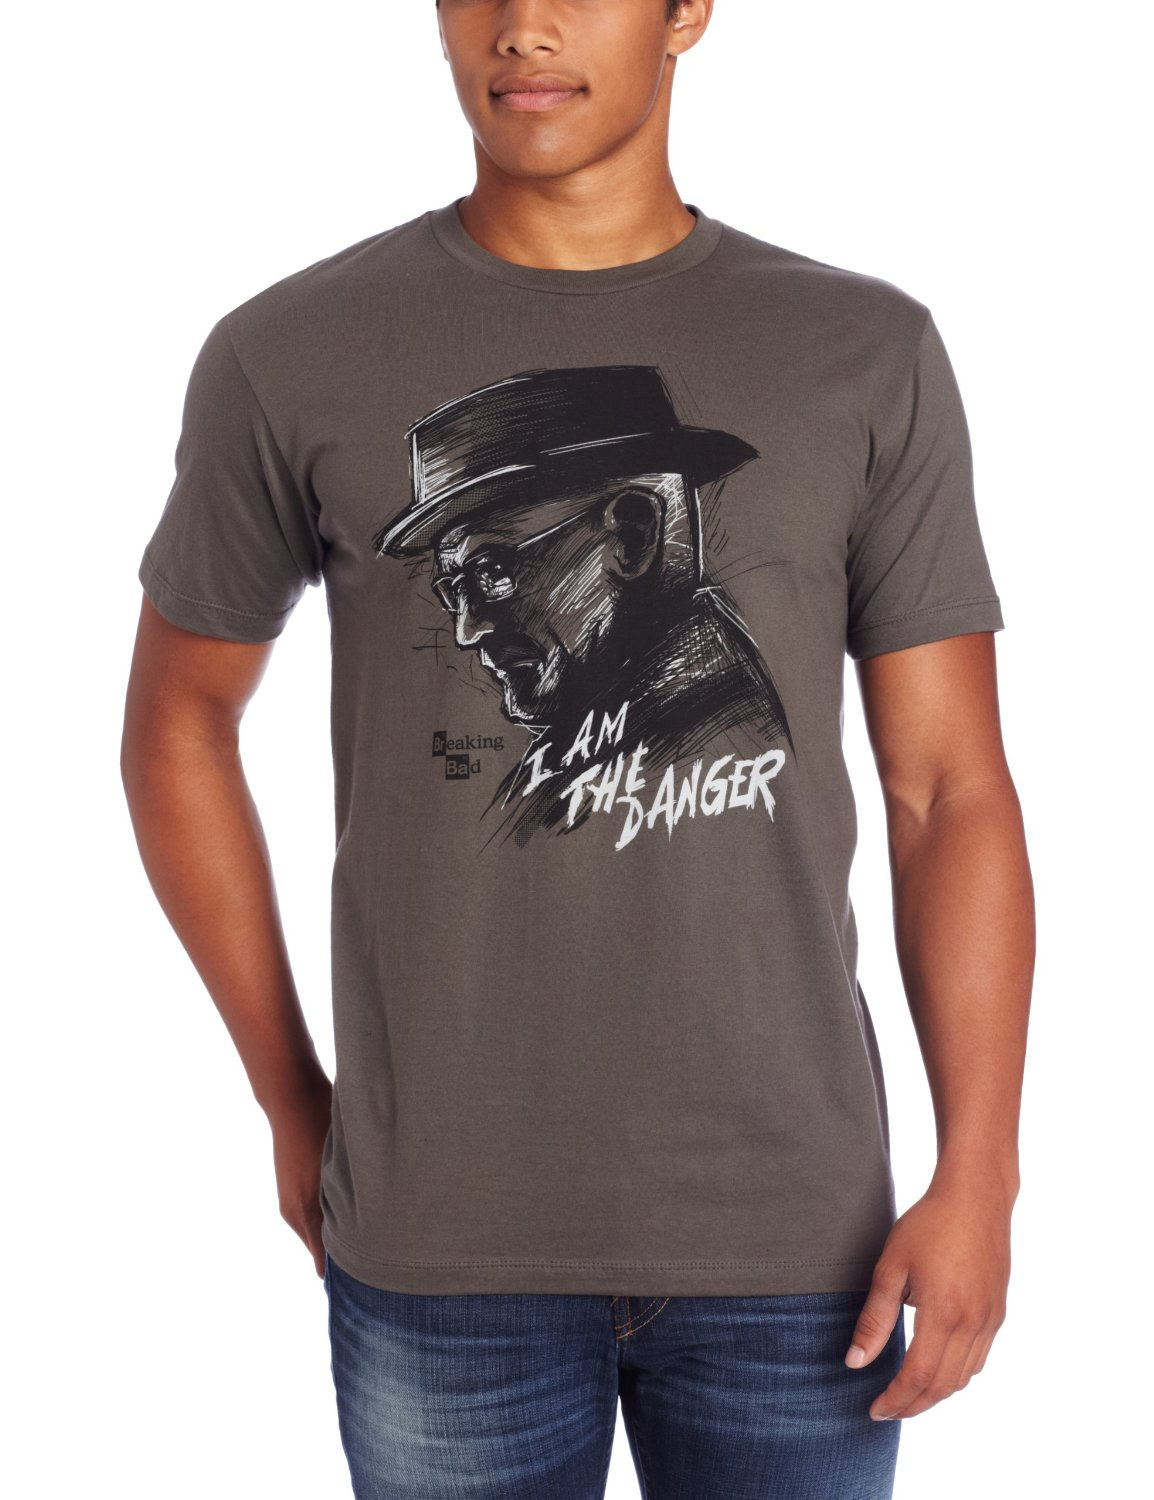 breaking bad i am the danger t shirt gift search. Black Bedroom Furniture Sets. Home Design Ideas